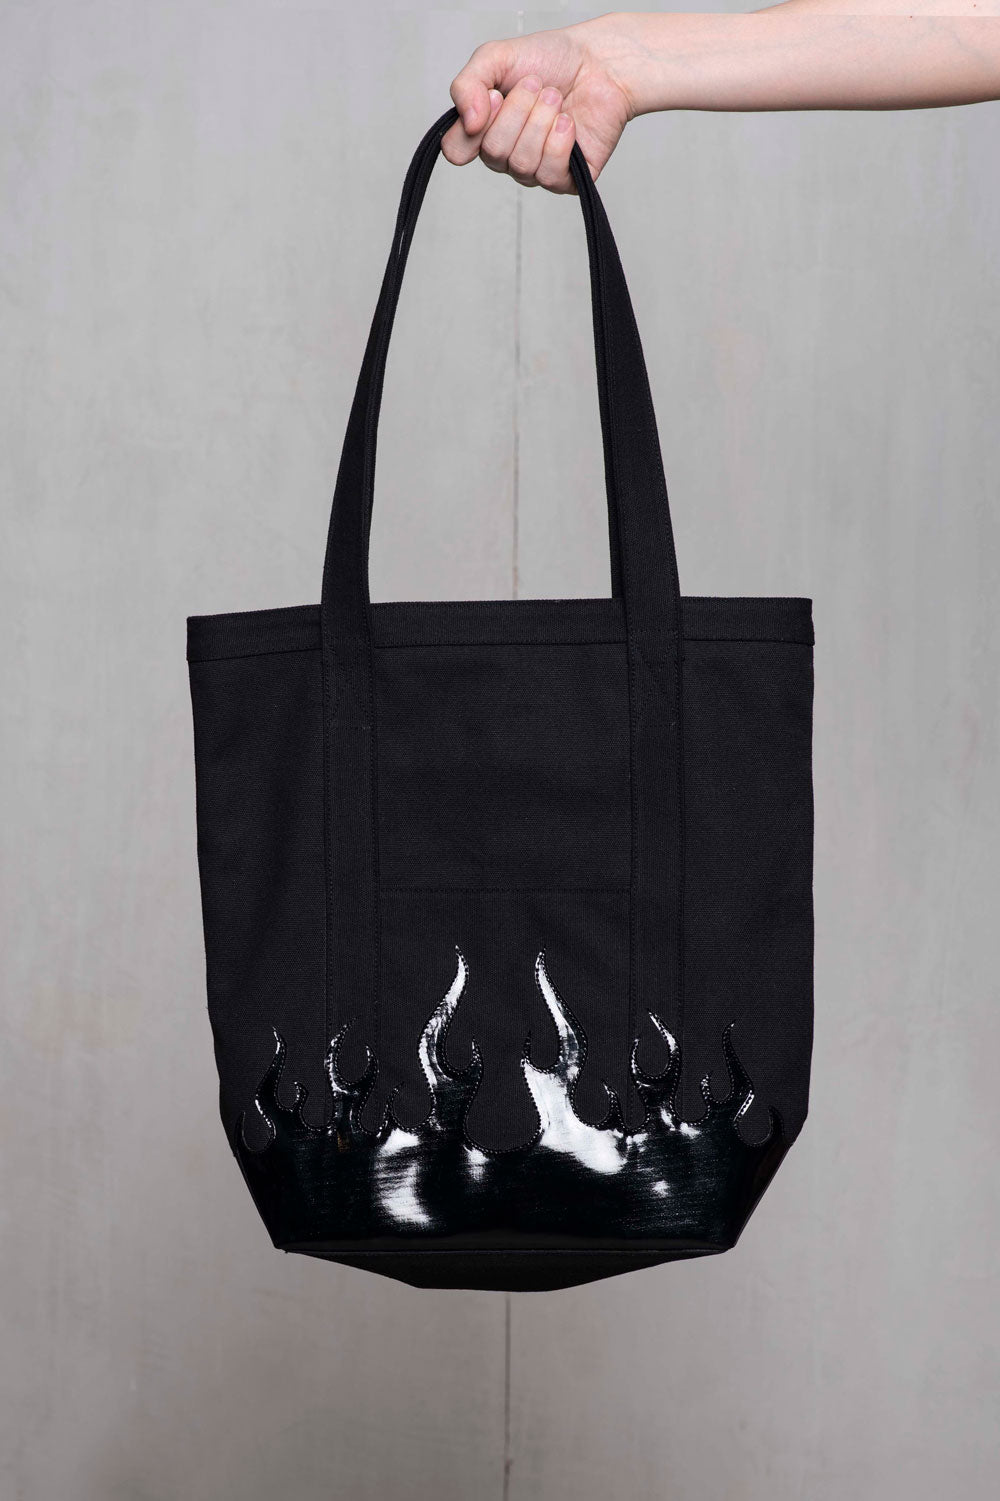 RANDOLF +ZG Black Flame Tote Bag